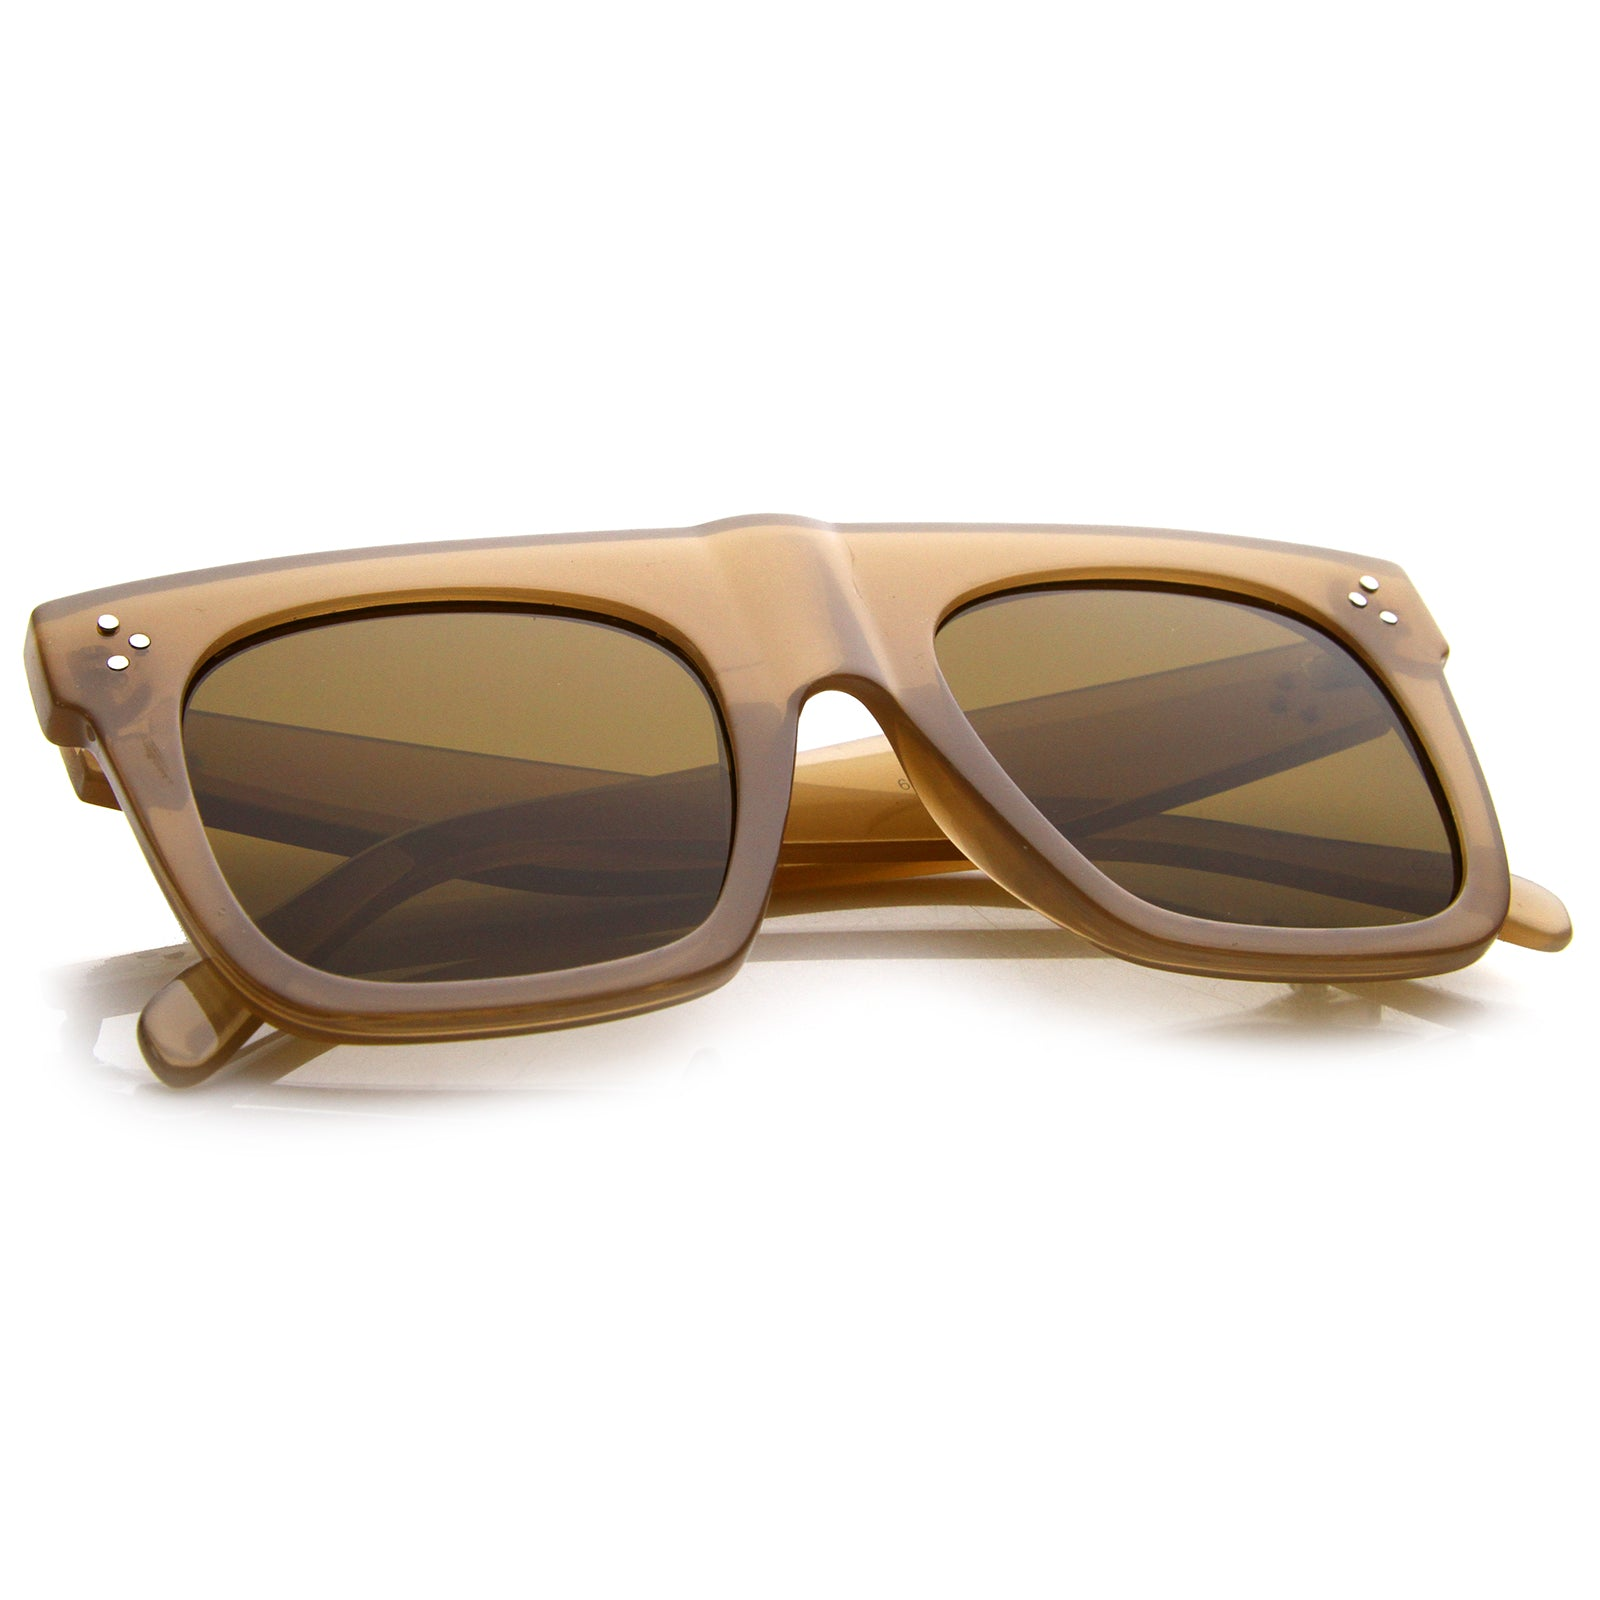 Modern Fashion Bold Flat Top Square Horn Rimmed Sunglasses 50mm - sunglass.la - 16